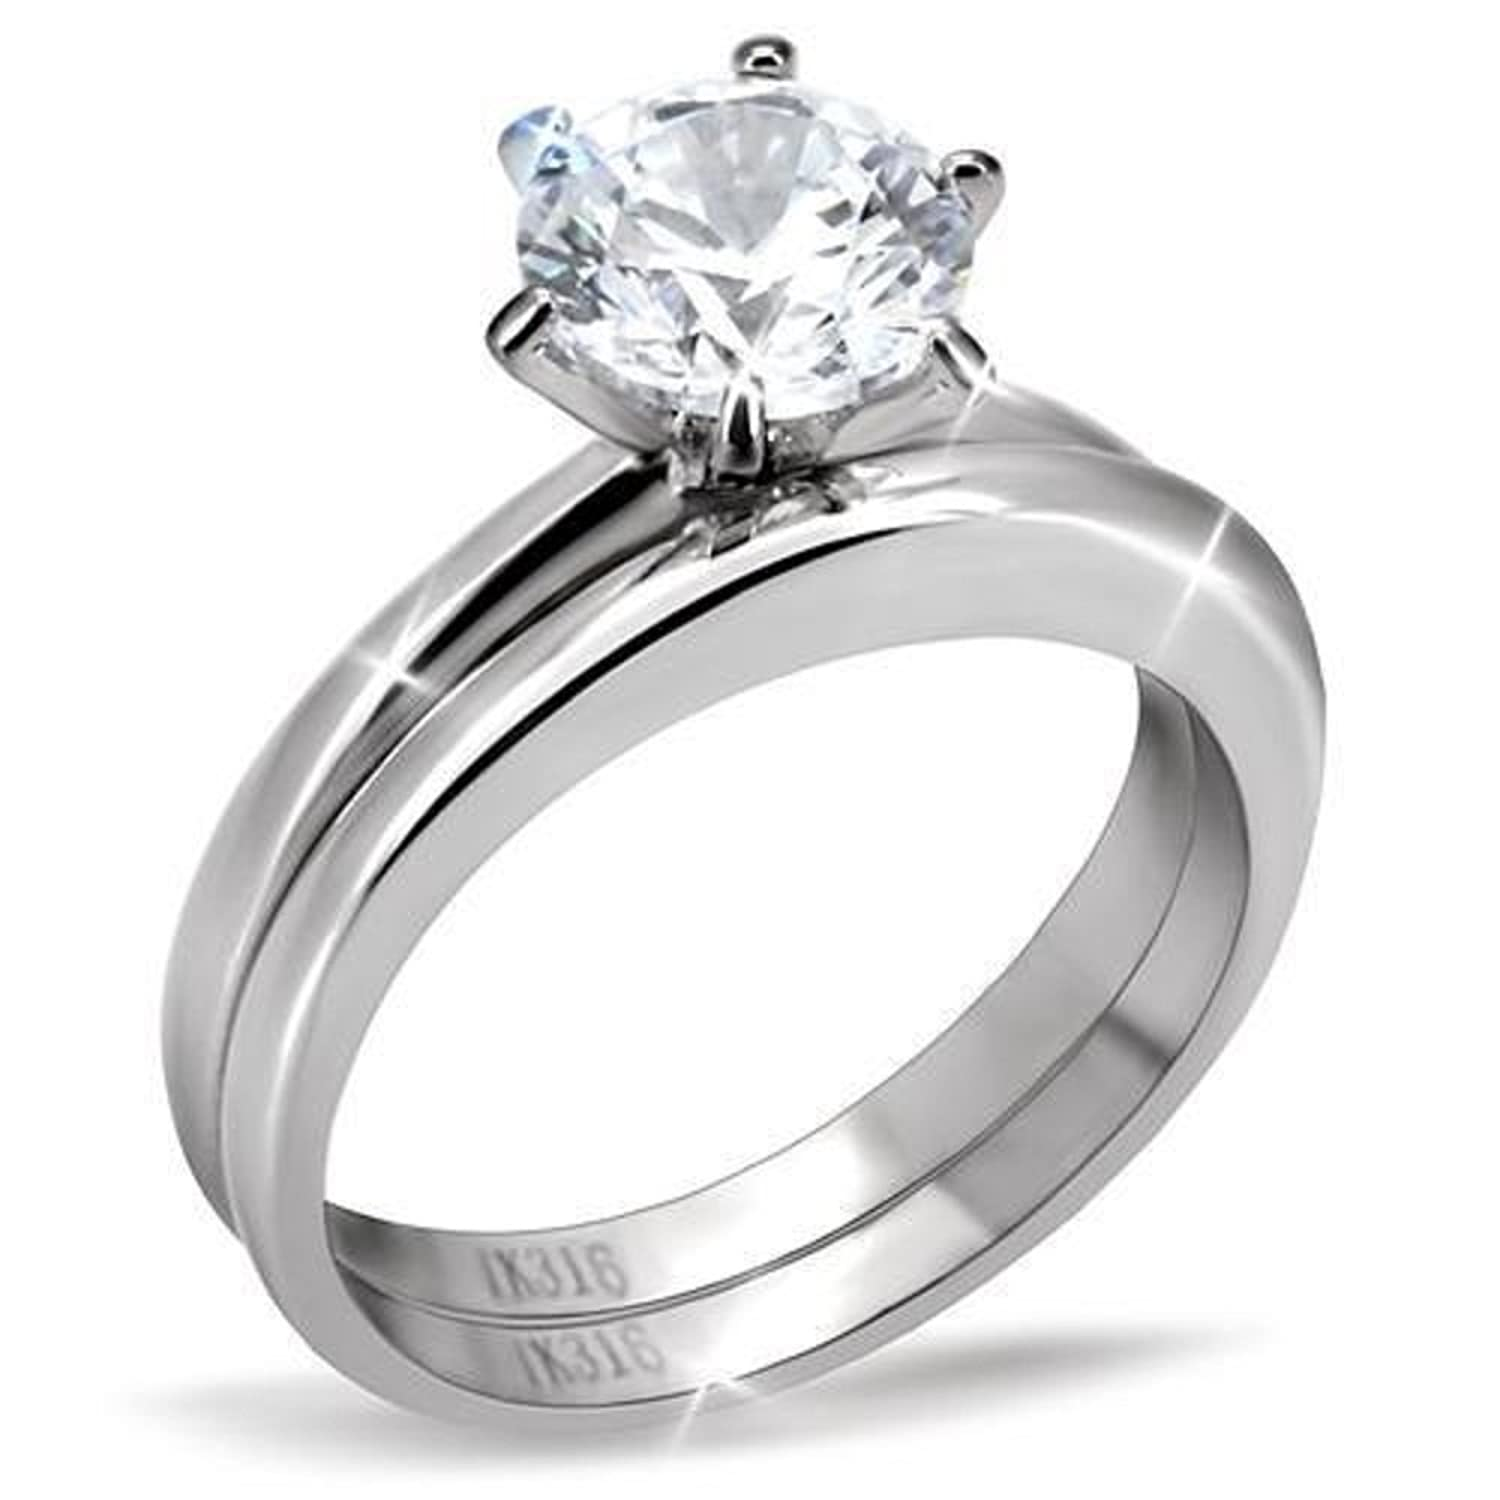 ae shaped ring rings at wedding prong engagement kyra solitaire four heart bands diamond